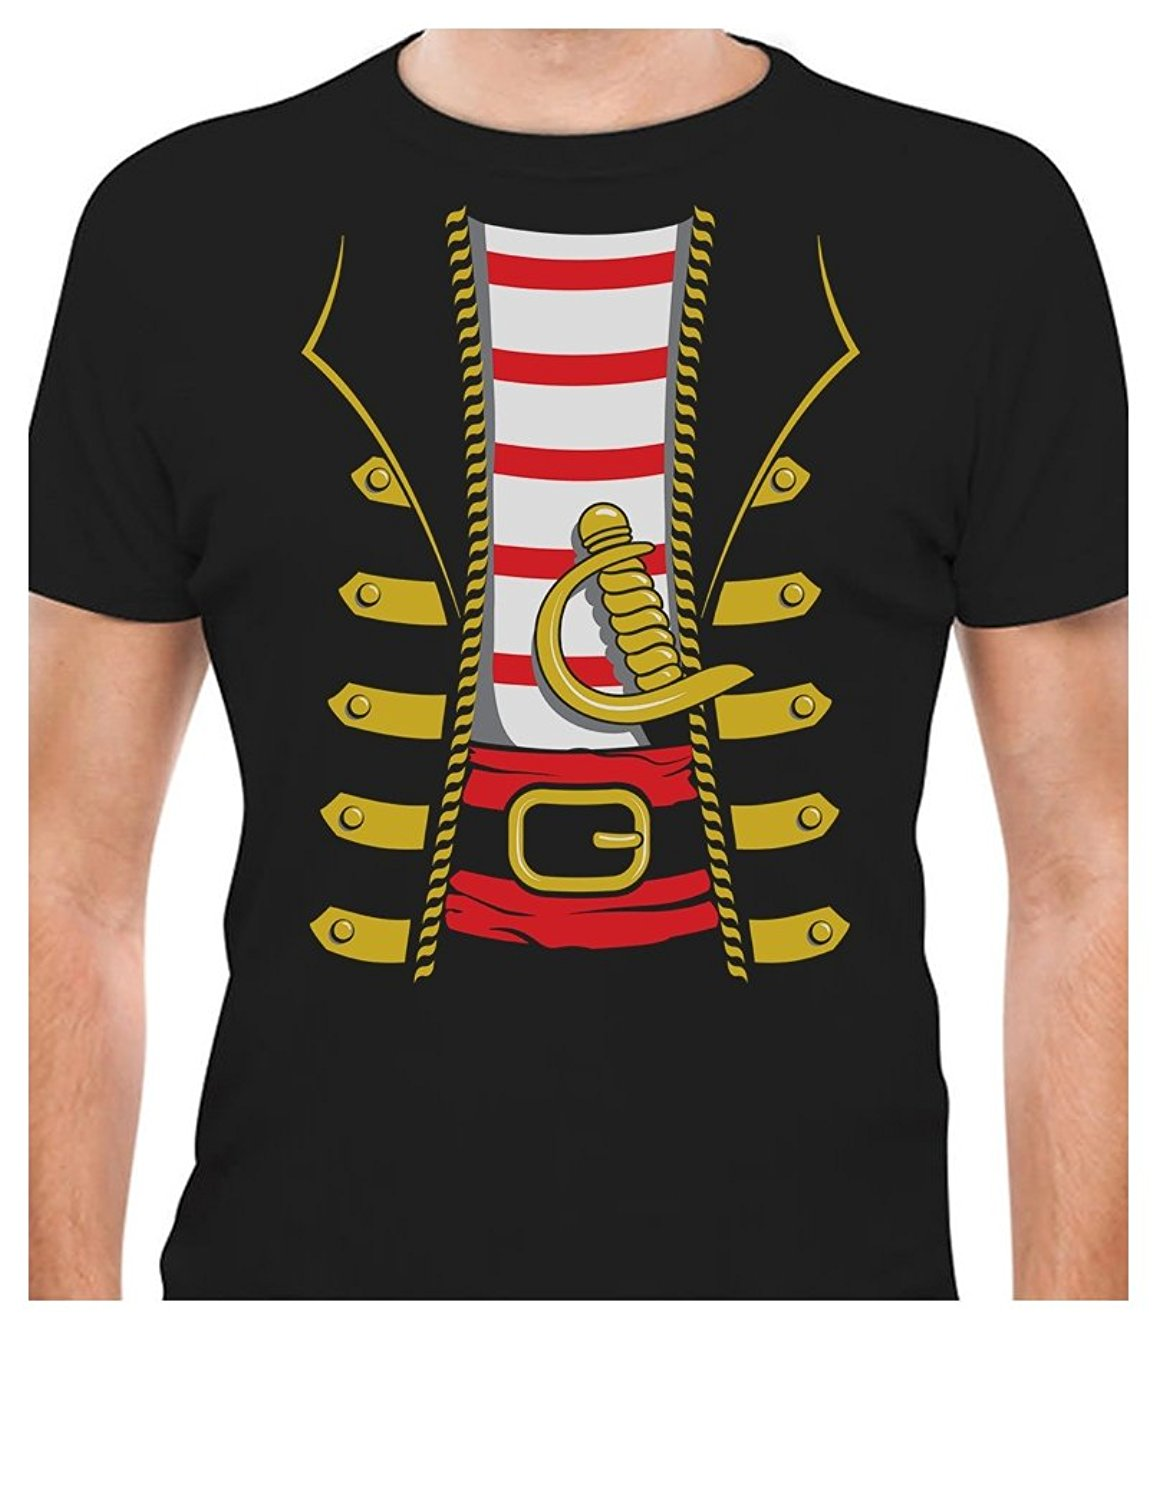 fabb3883 US $11.24 25% OFF|Printed tee shirt design Halloween Pirate Buccaneer  Costume Outfit Suit T Shirt Circle t shirt designers-in T-Shirts from Men's  ...